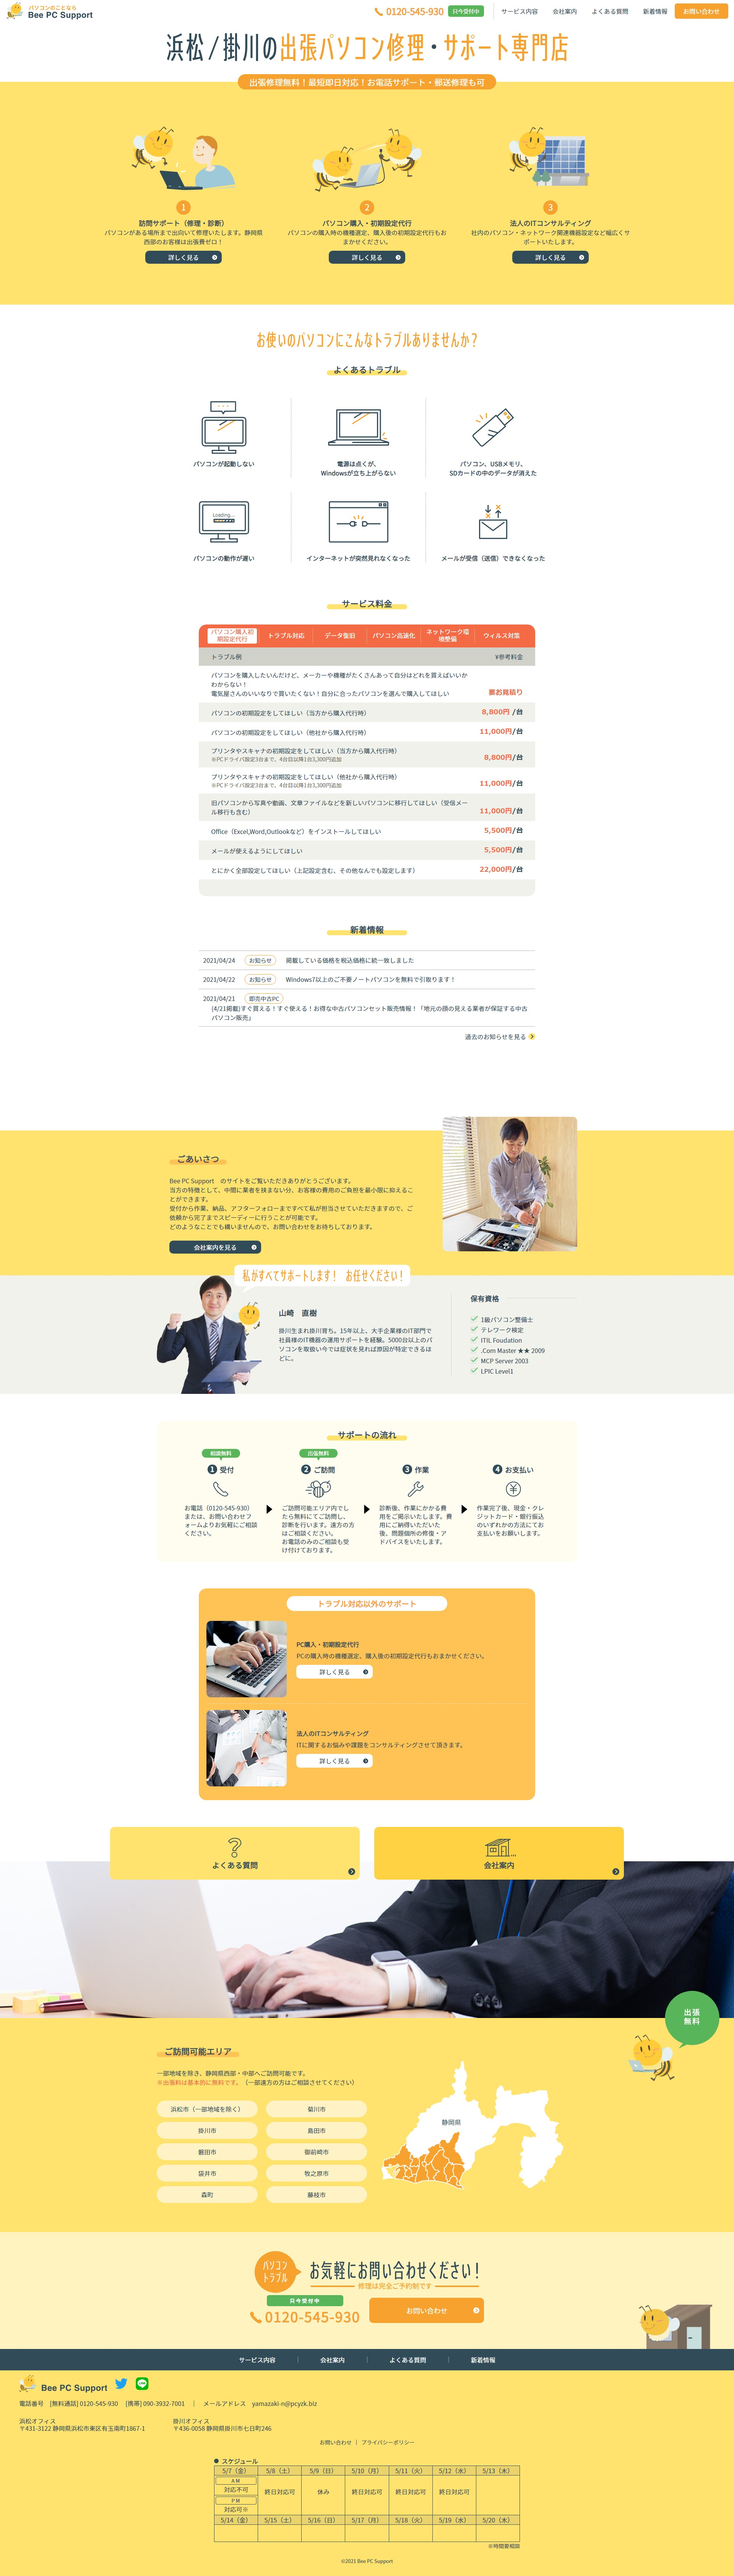 Bee PC Support様